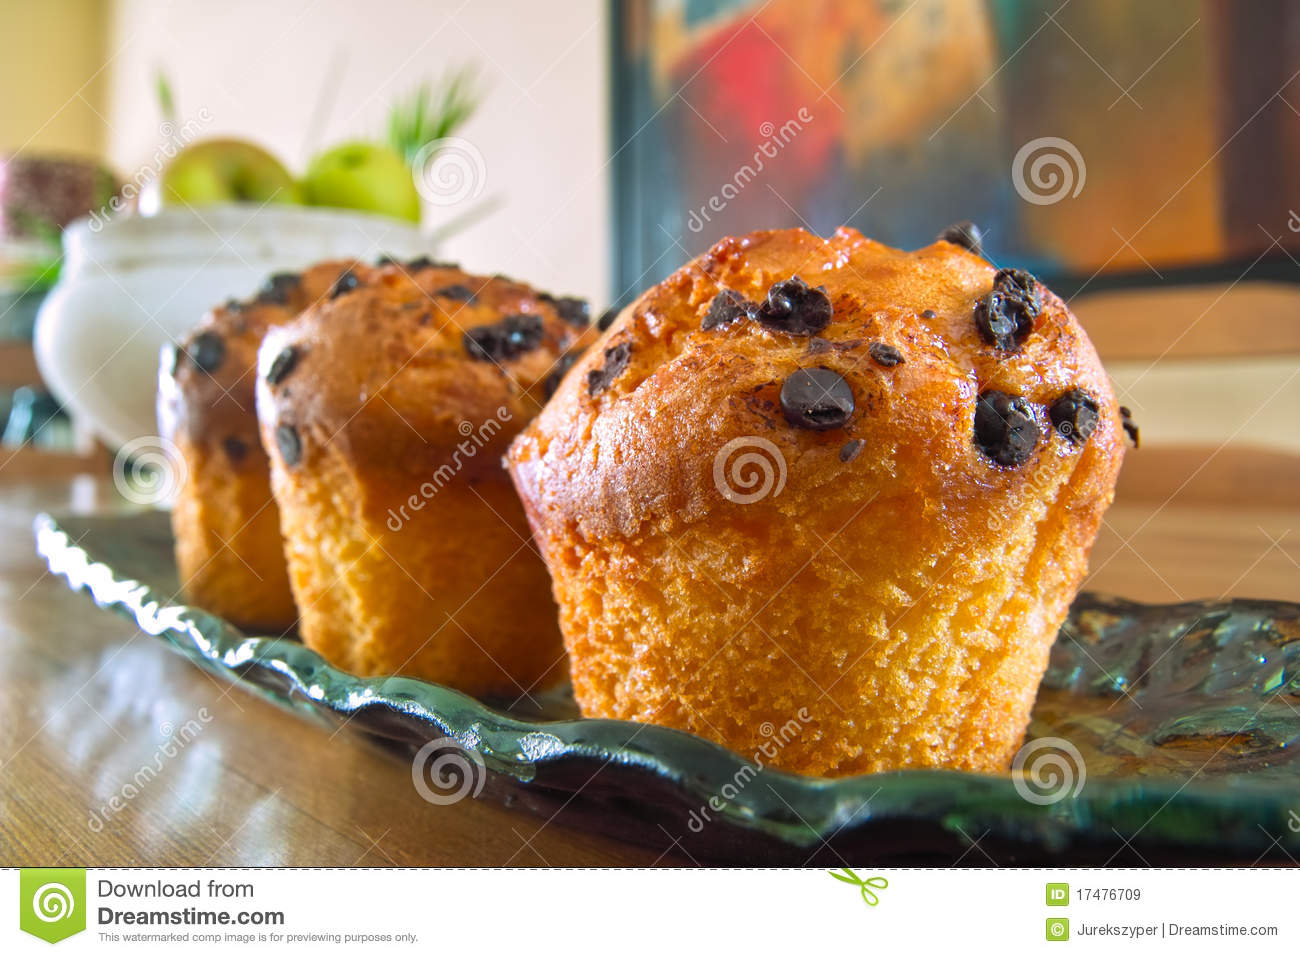 Muffins served on the table